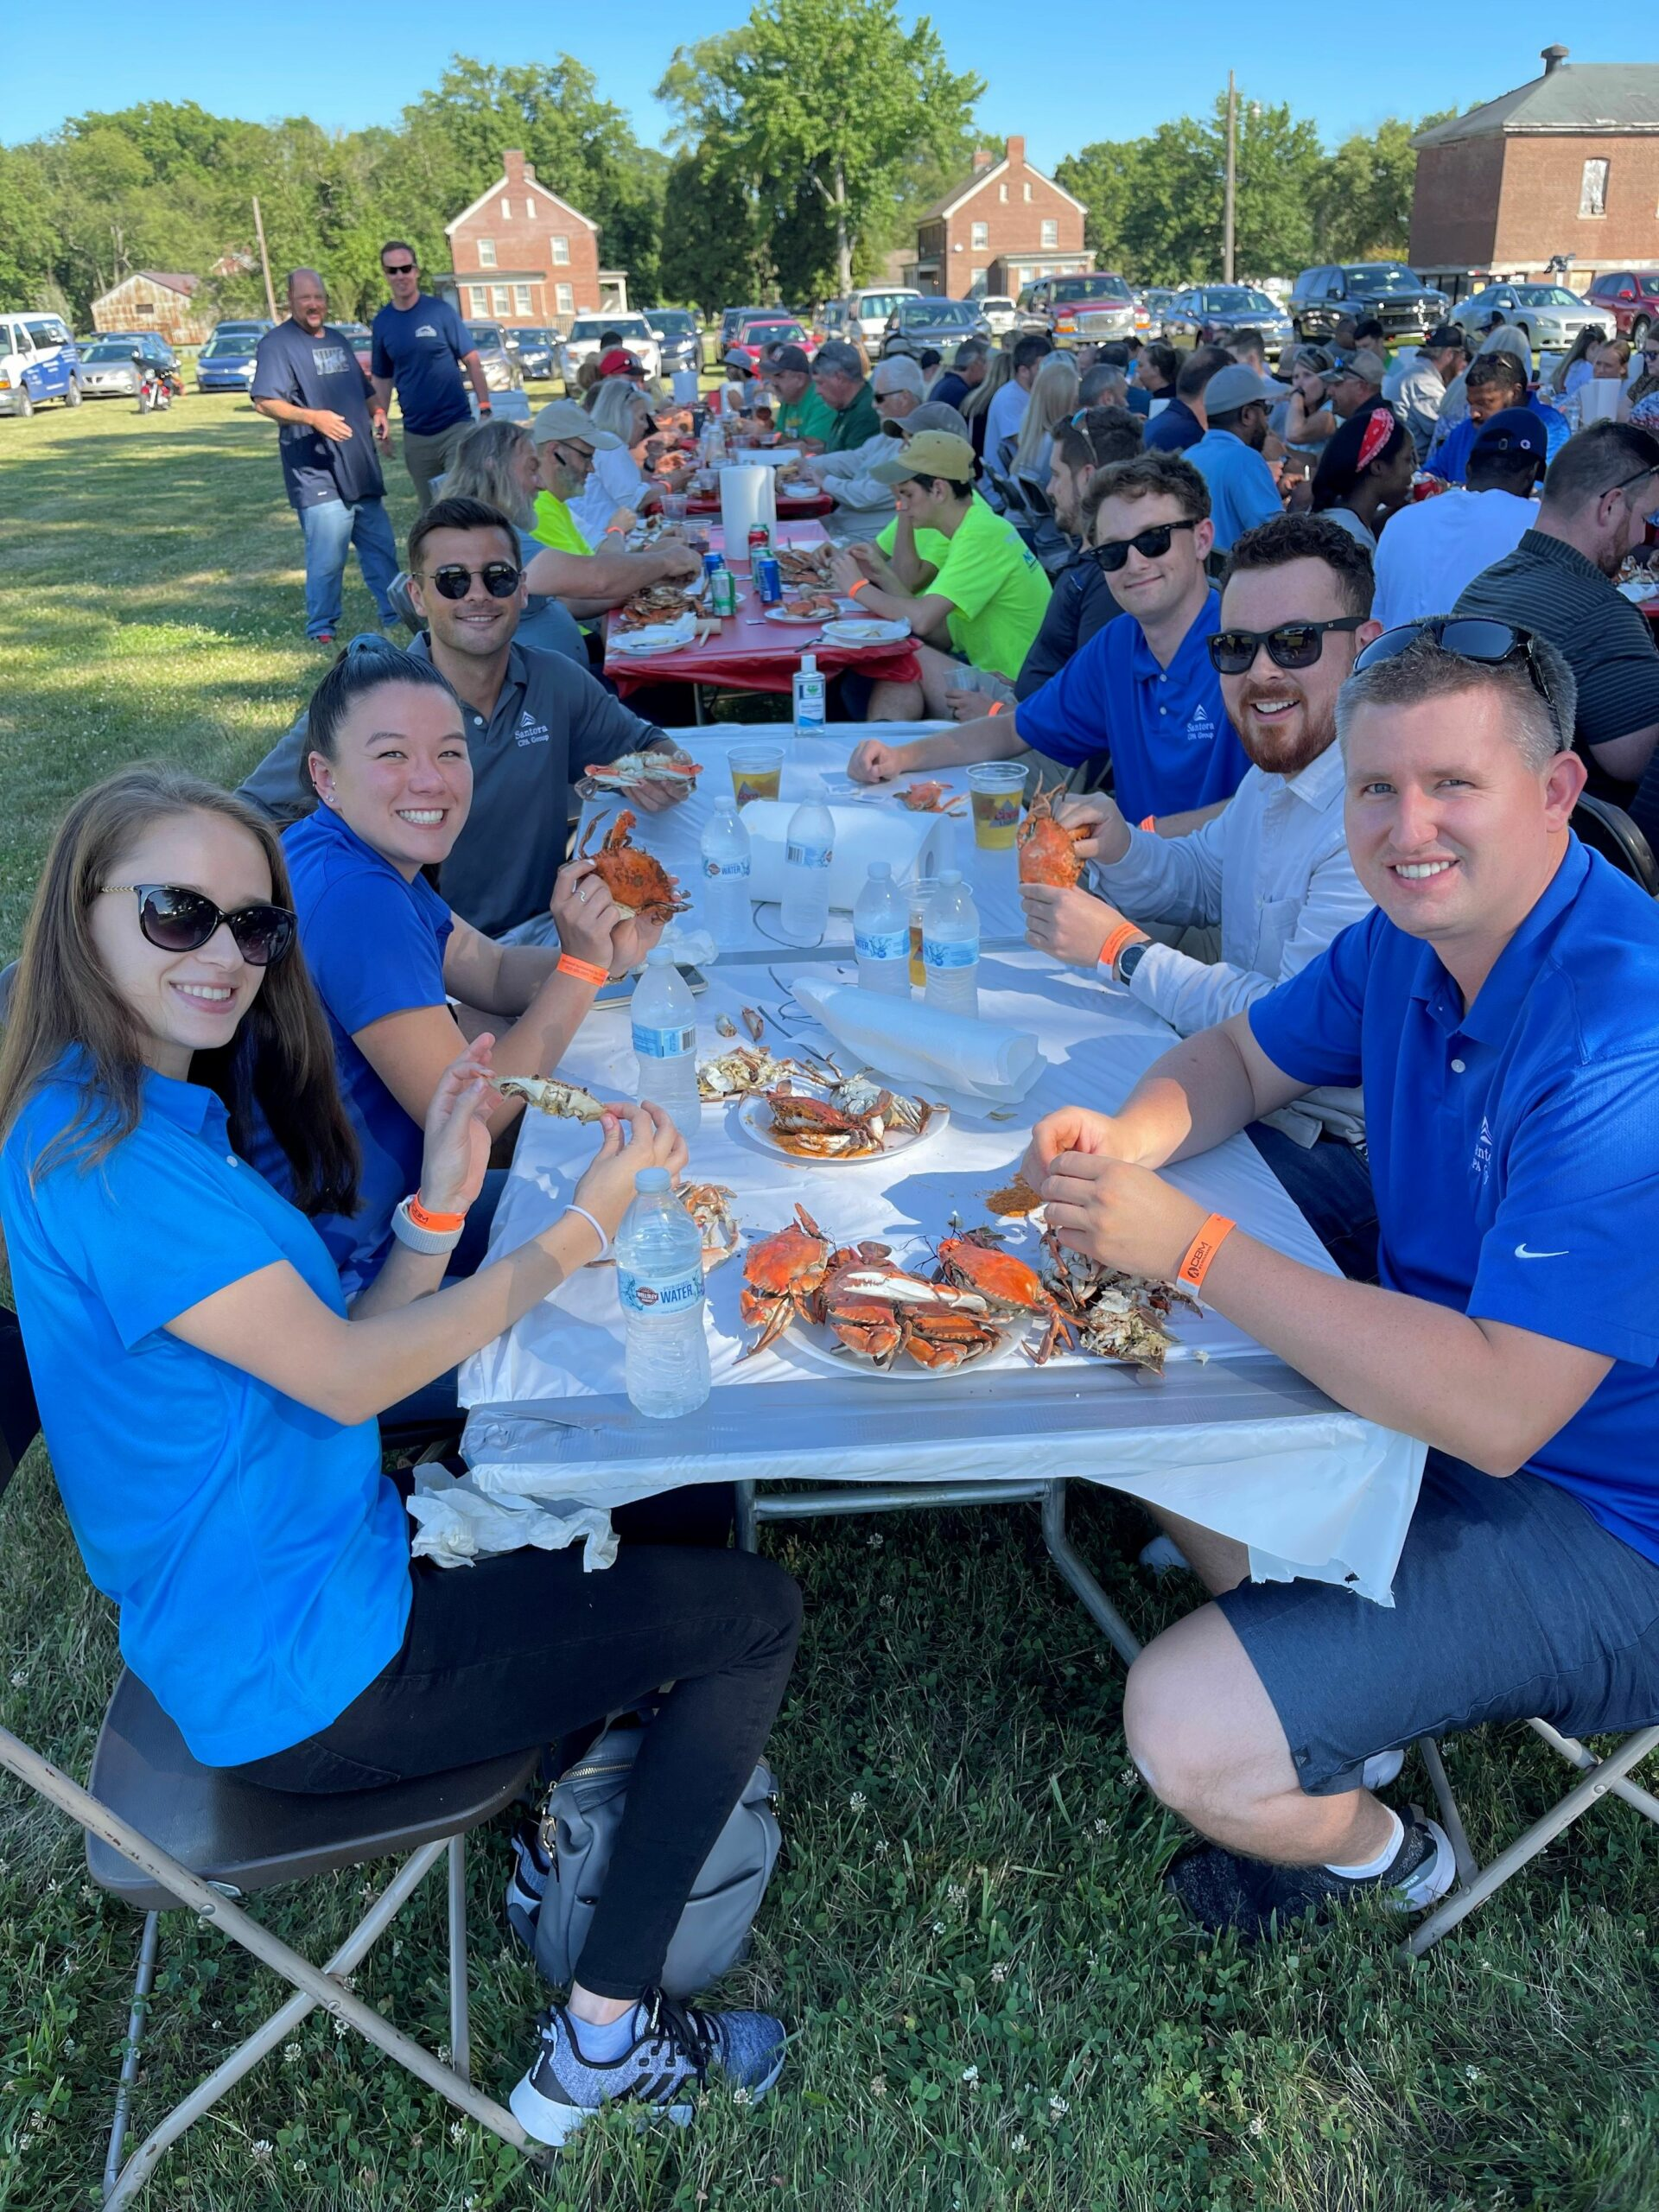 Beautiful Evening at ABC Delaware's 29th Annual Crab Feast!